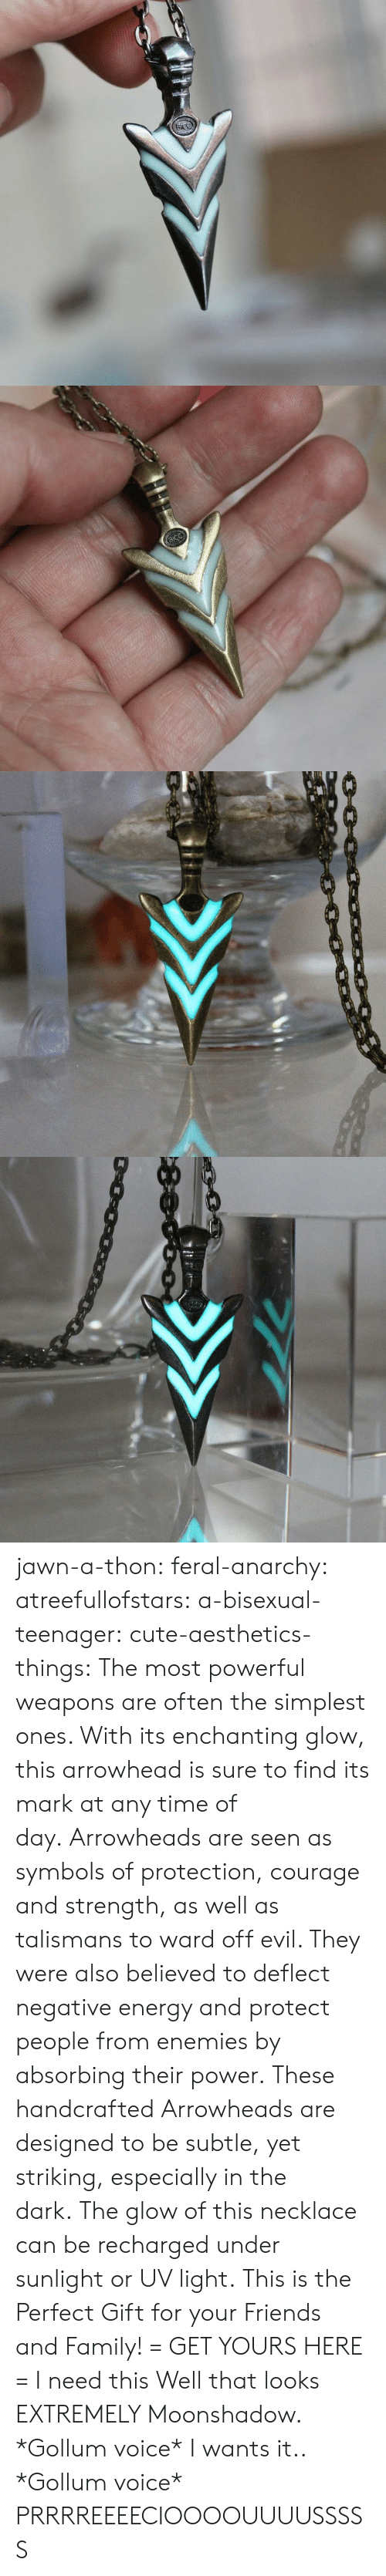 Jawn: acc   0000c0 jawn-a-thon:  feral-anarchy:  atreefullofstars:   a-bisexual-teenager:  cute-aesthetics-things:  The most powerful weapons are often the simplest ones. With its enchanting glow, this arrowhead is sure to find its mark at any time of day. Arrowheads are seen as symbols of protection, courage and strength, as well as talismans to ward off evil. They were also believed to deflect negative energy and protect people from enemies by absorbing their power. These handcrafted Arrowheads are designed to be subtle, yet striking, especially in the dark. The glow of this necklace can be recharged under sunlight or UV light. This is the Perfect Gift for your Friends and Family! = GET YOURS HERE =   I need this  Well that looks EXTREMELY Moonshadow.   *Gollum voice* I wants it..  *Gollum voice* PRRRREEEECIOOOOUUUUSSSSS